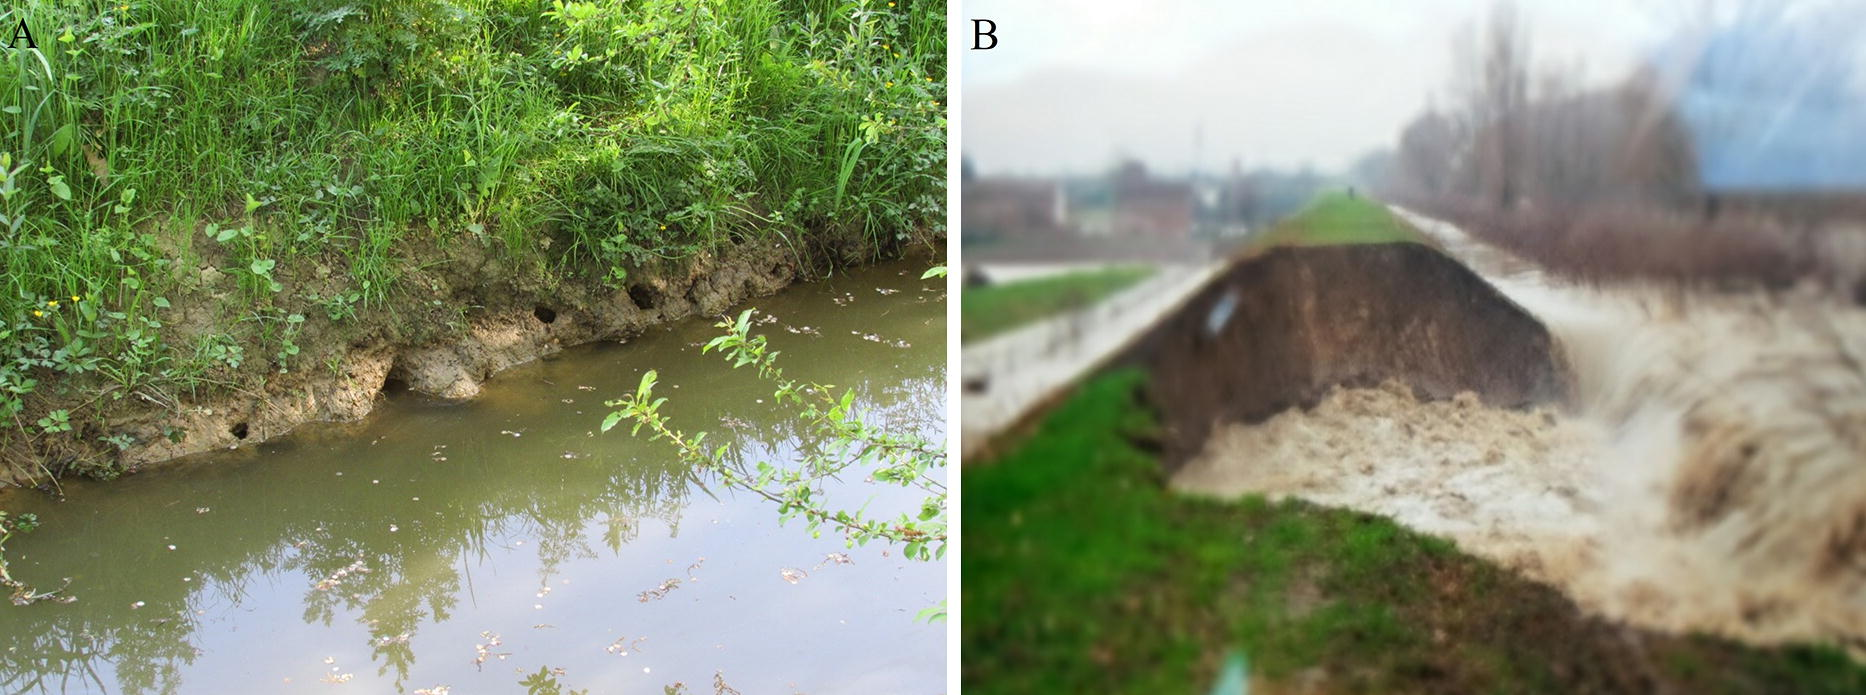 Burrowing activity of Procambarus clarkii on levees